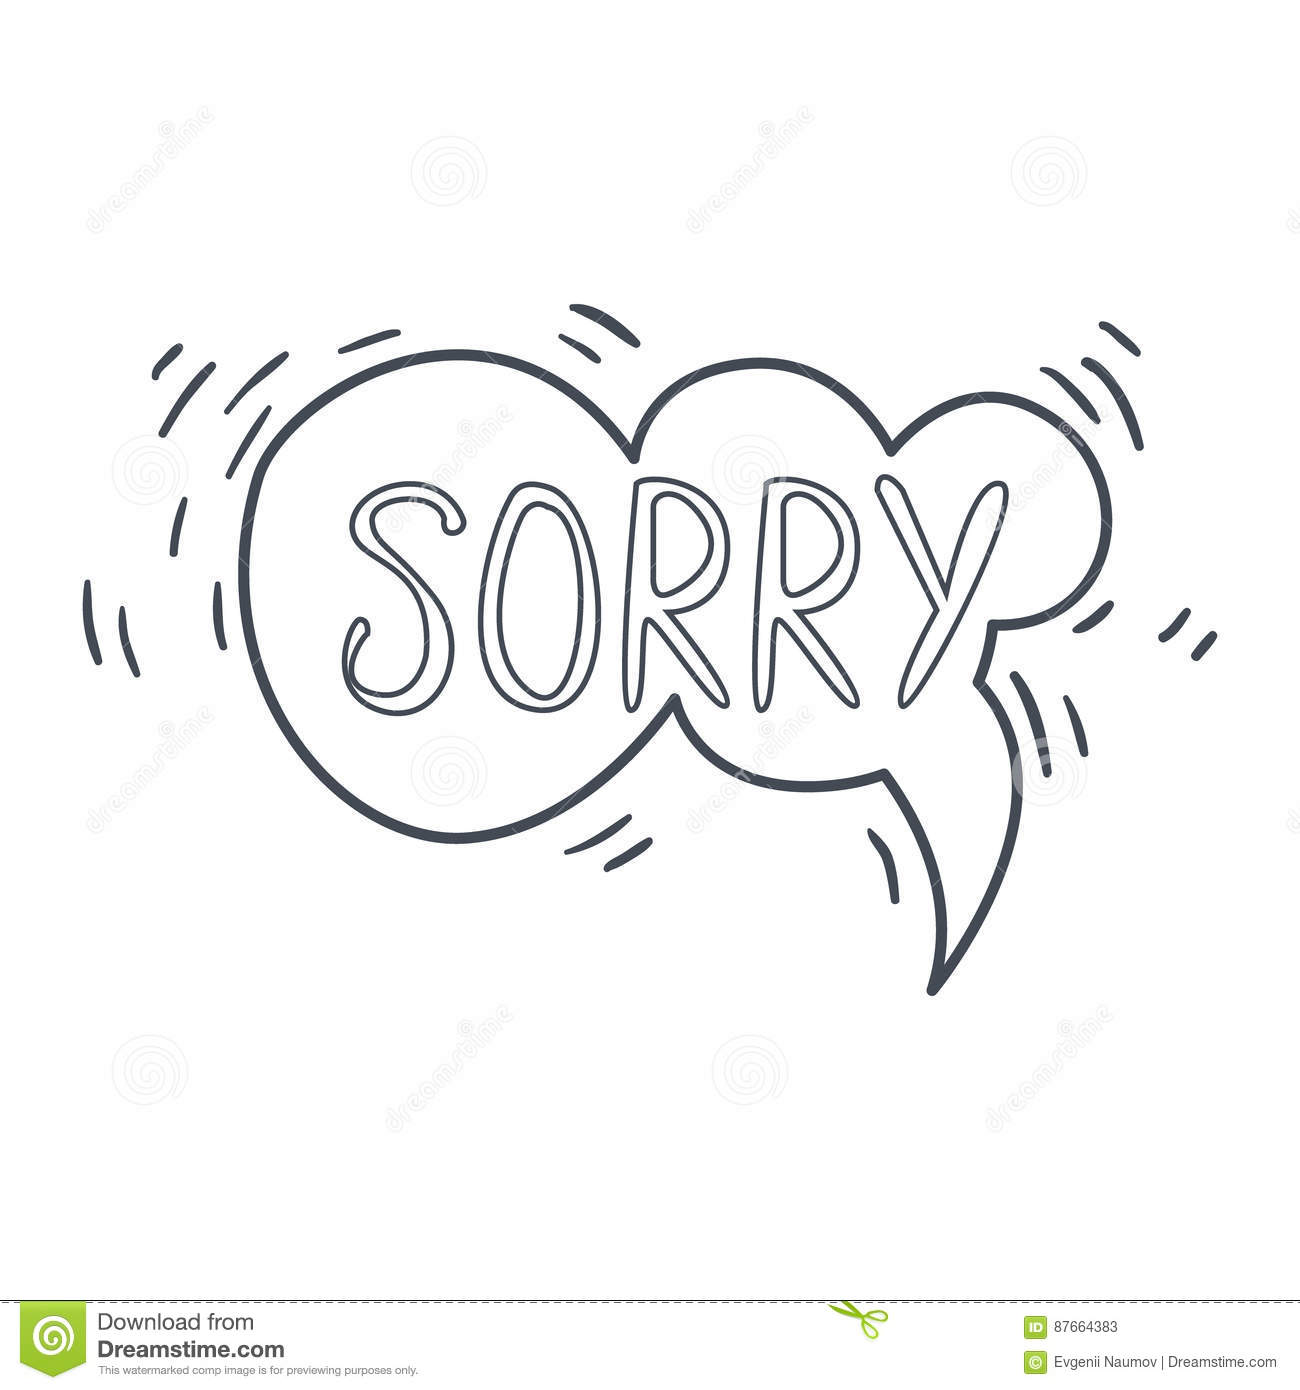 Word Sorry Hand Drawn Comic Speech Bubble Template Isolated Black And White Hand Drawn Clipart